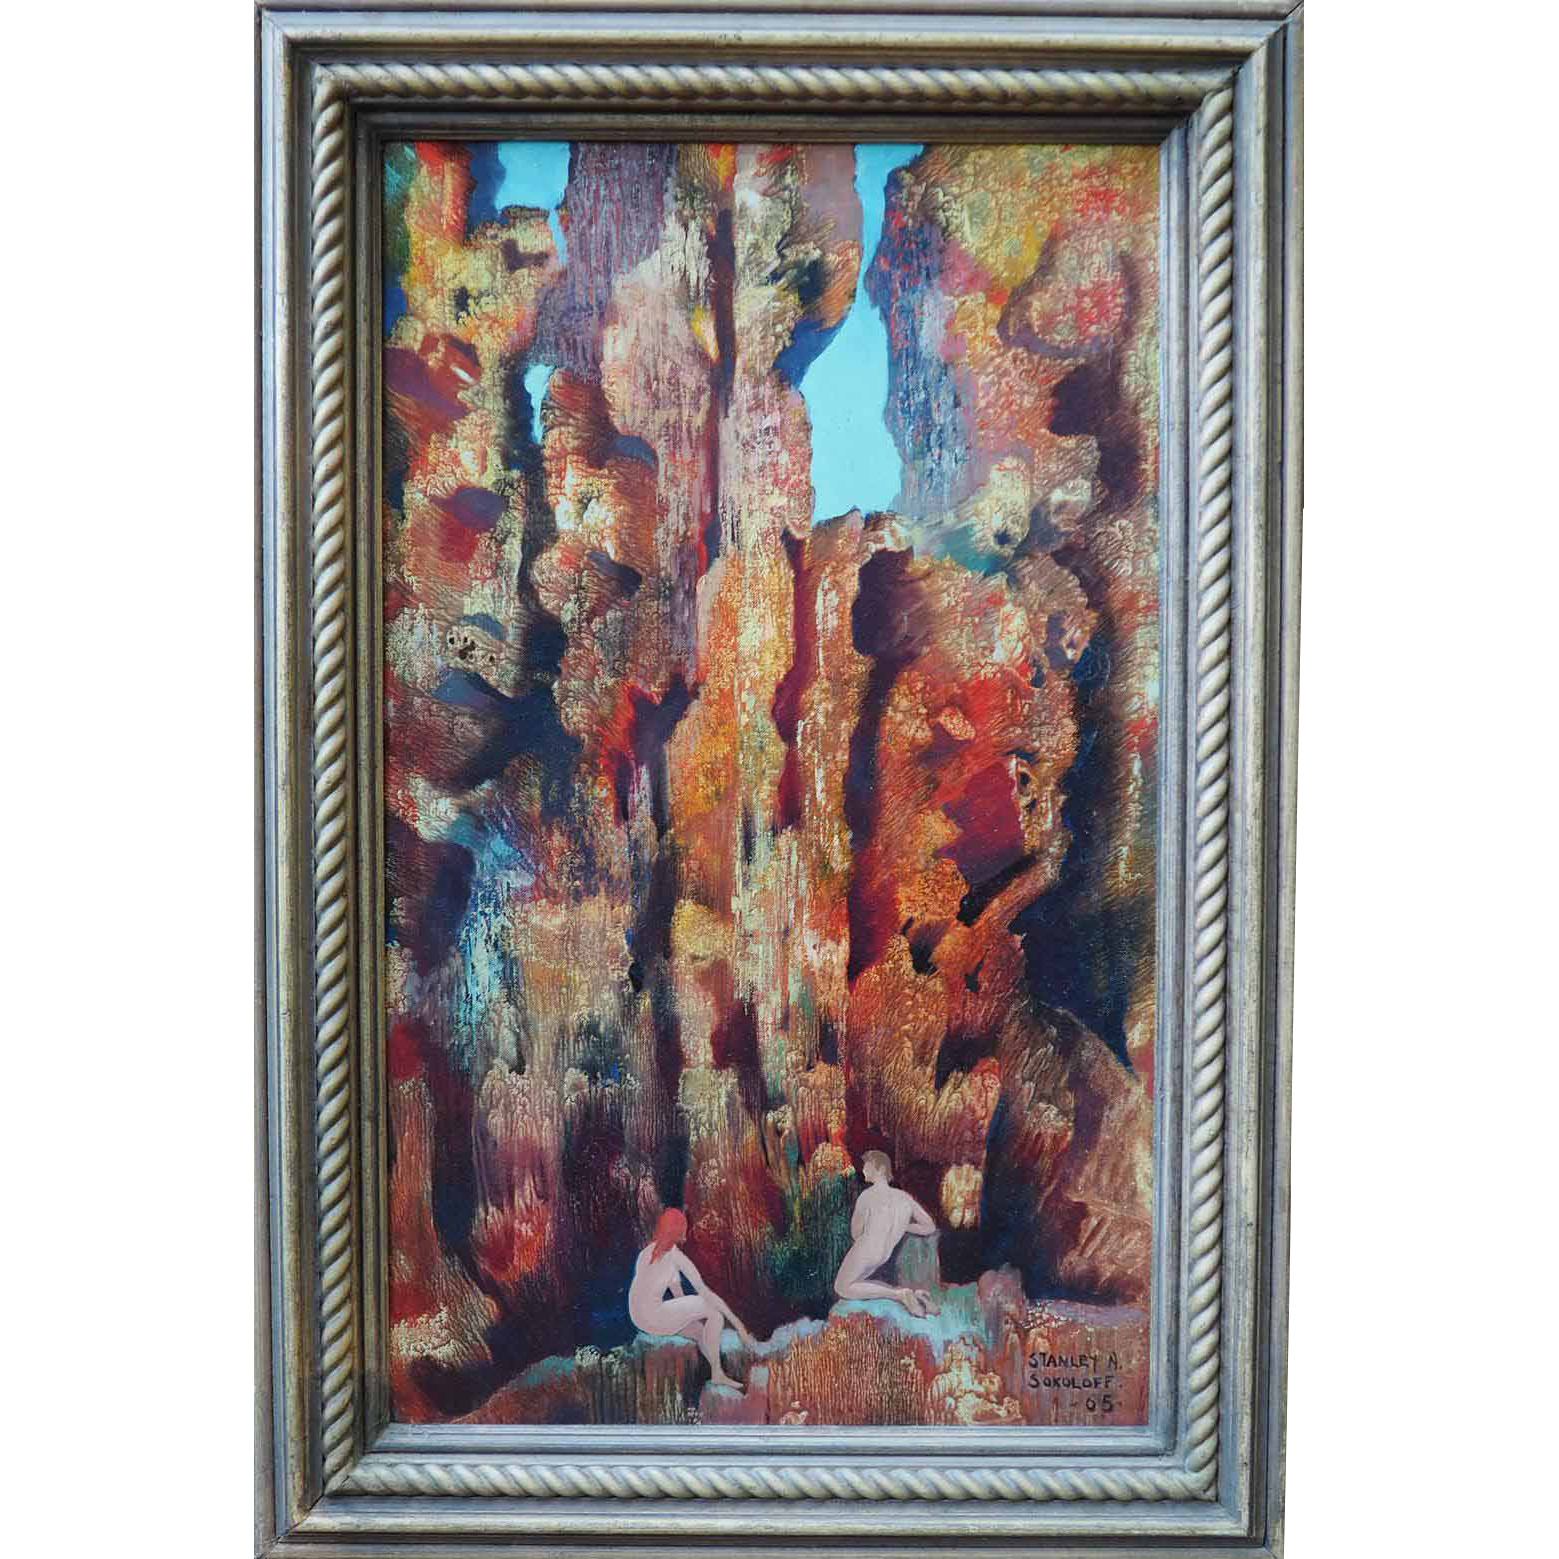 Paradise garden nude figures original vintage oil painting by Stanley Sokoloff